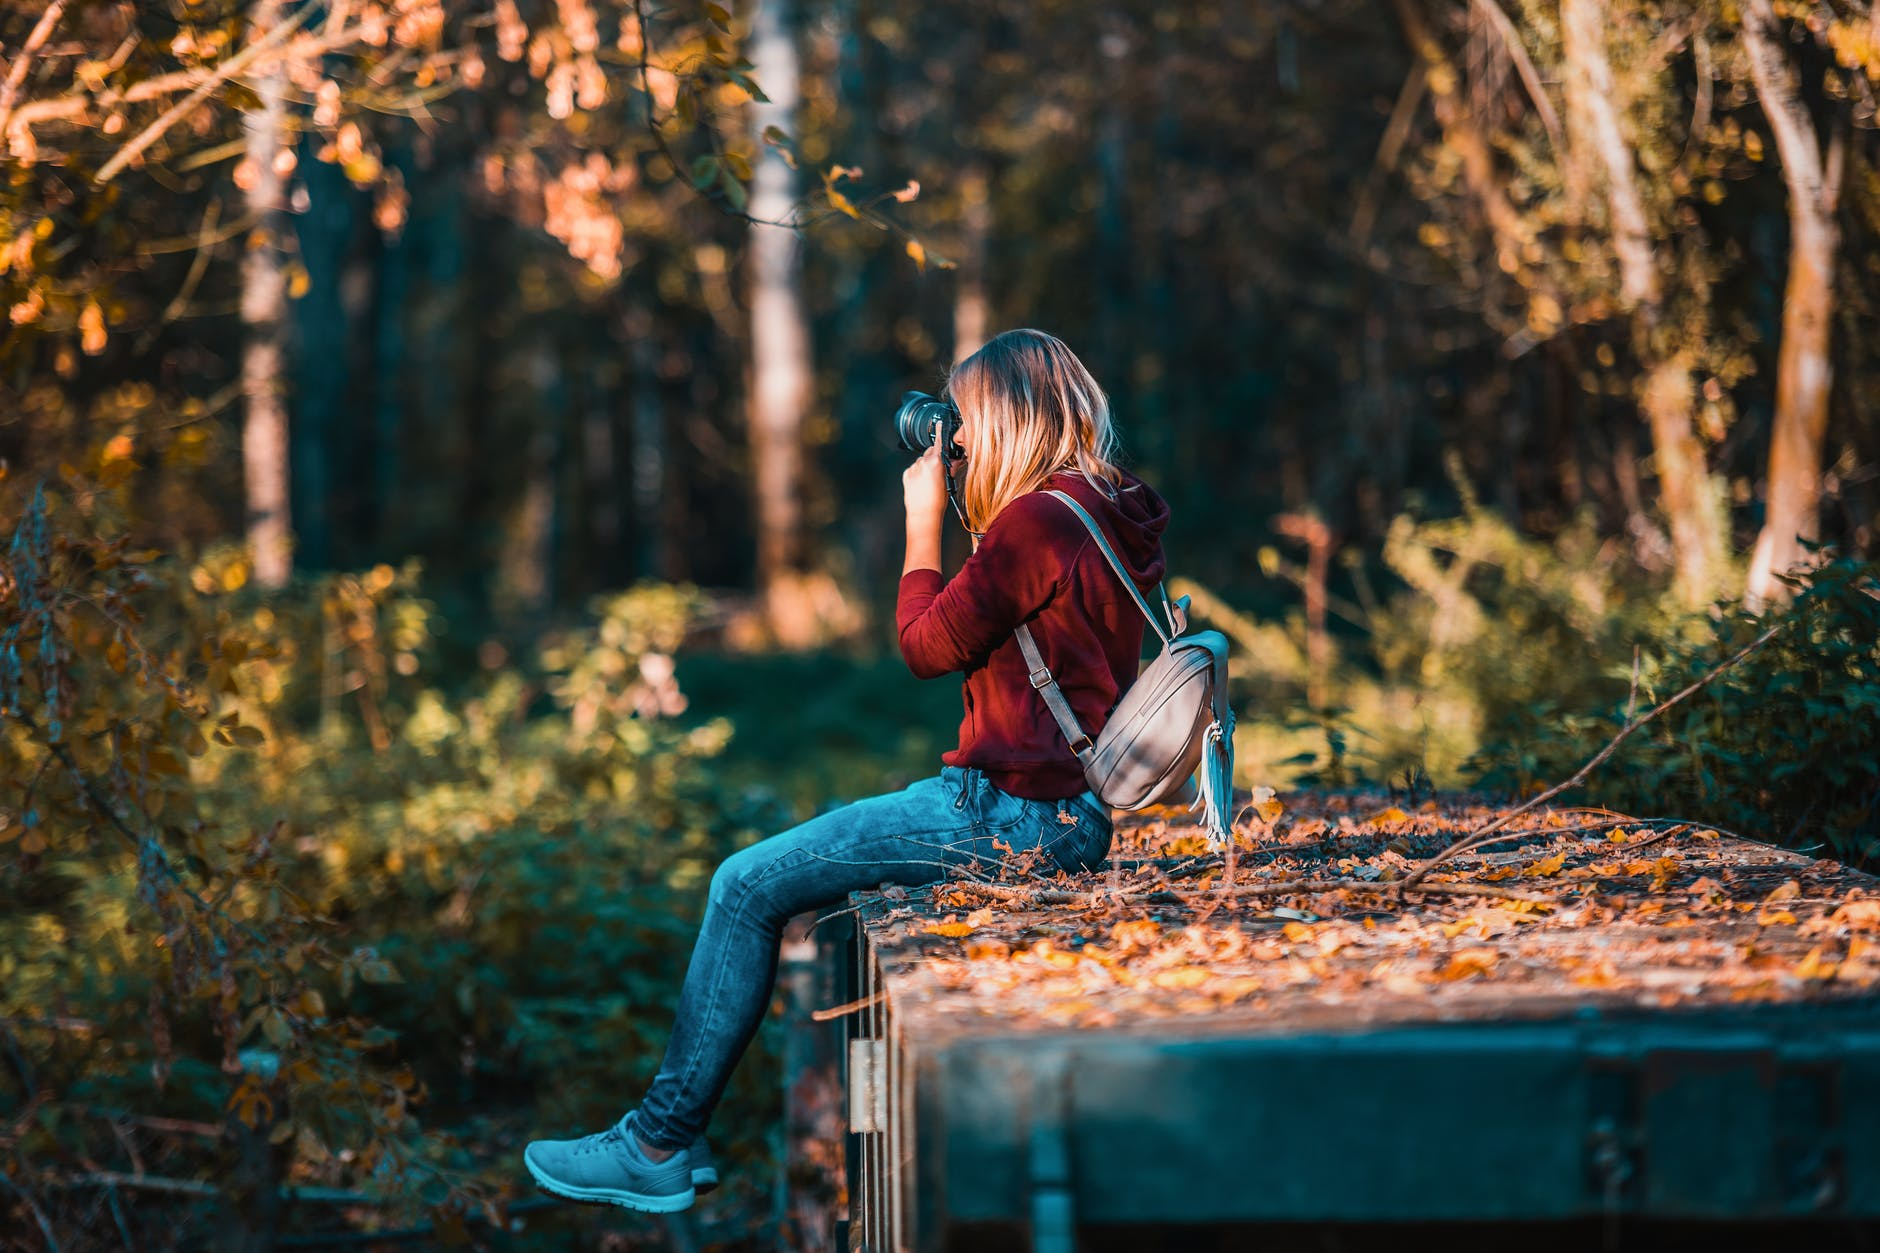 A woman sitting in the woods taking a photo with her camera